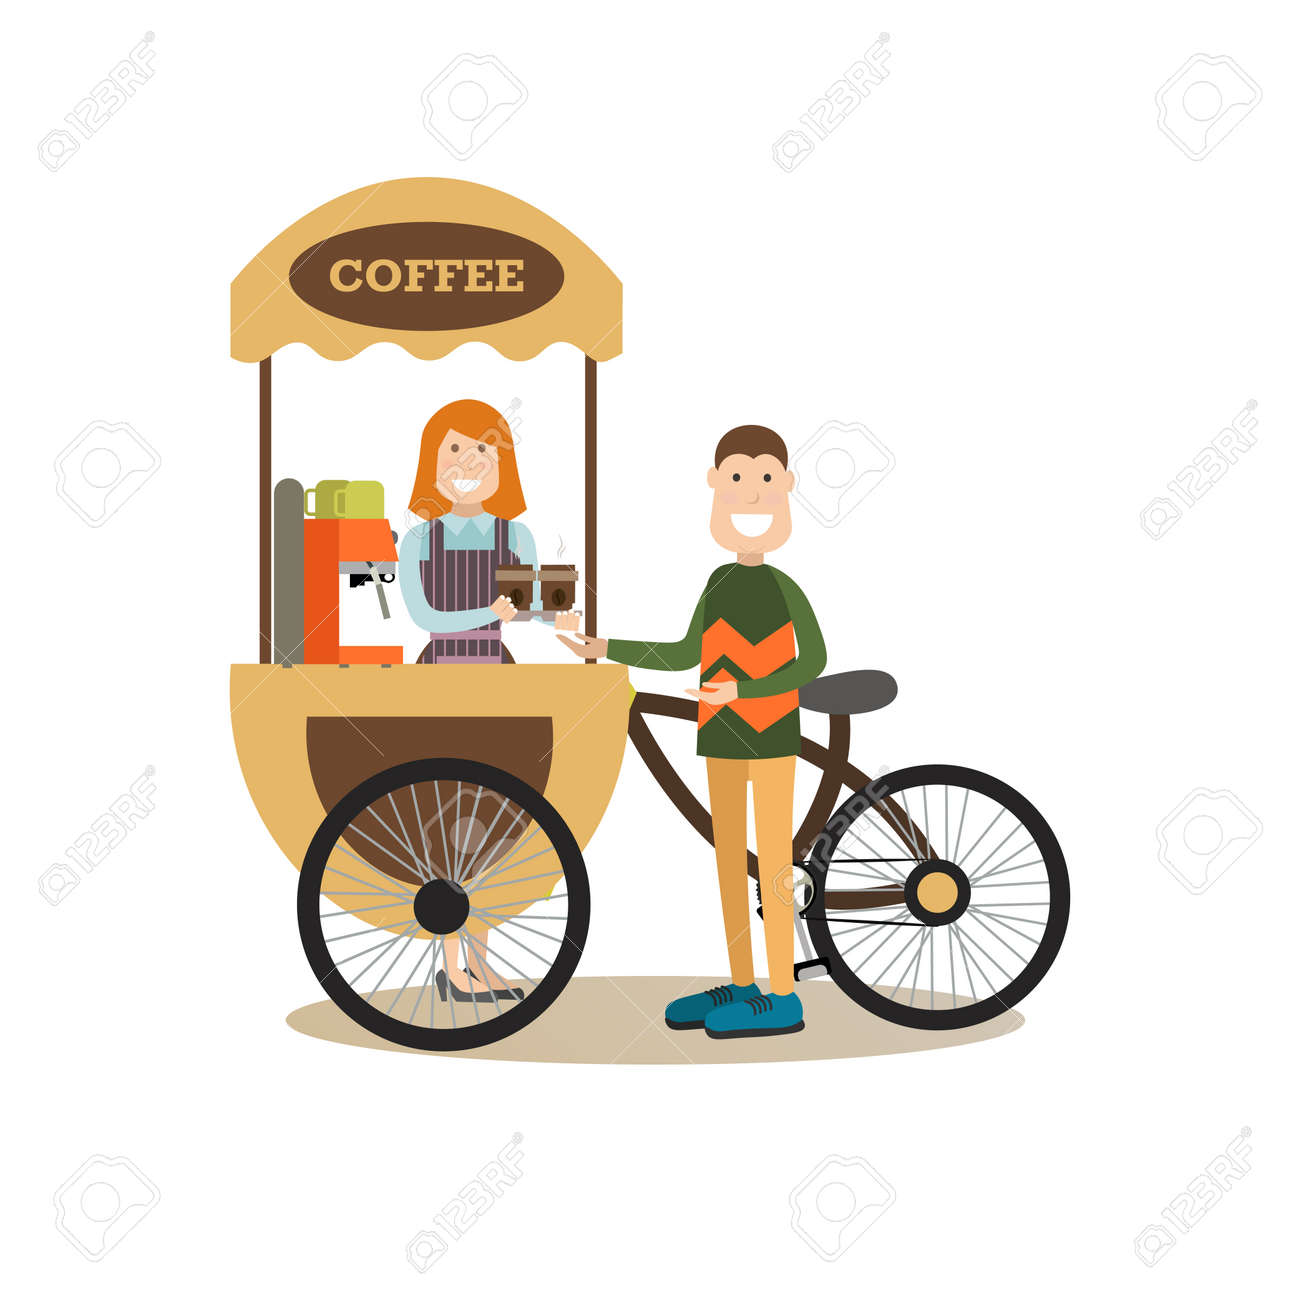 Vector Illustration Of Young Man Buying Coffee To Go At Street